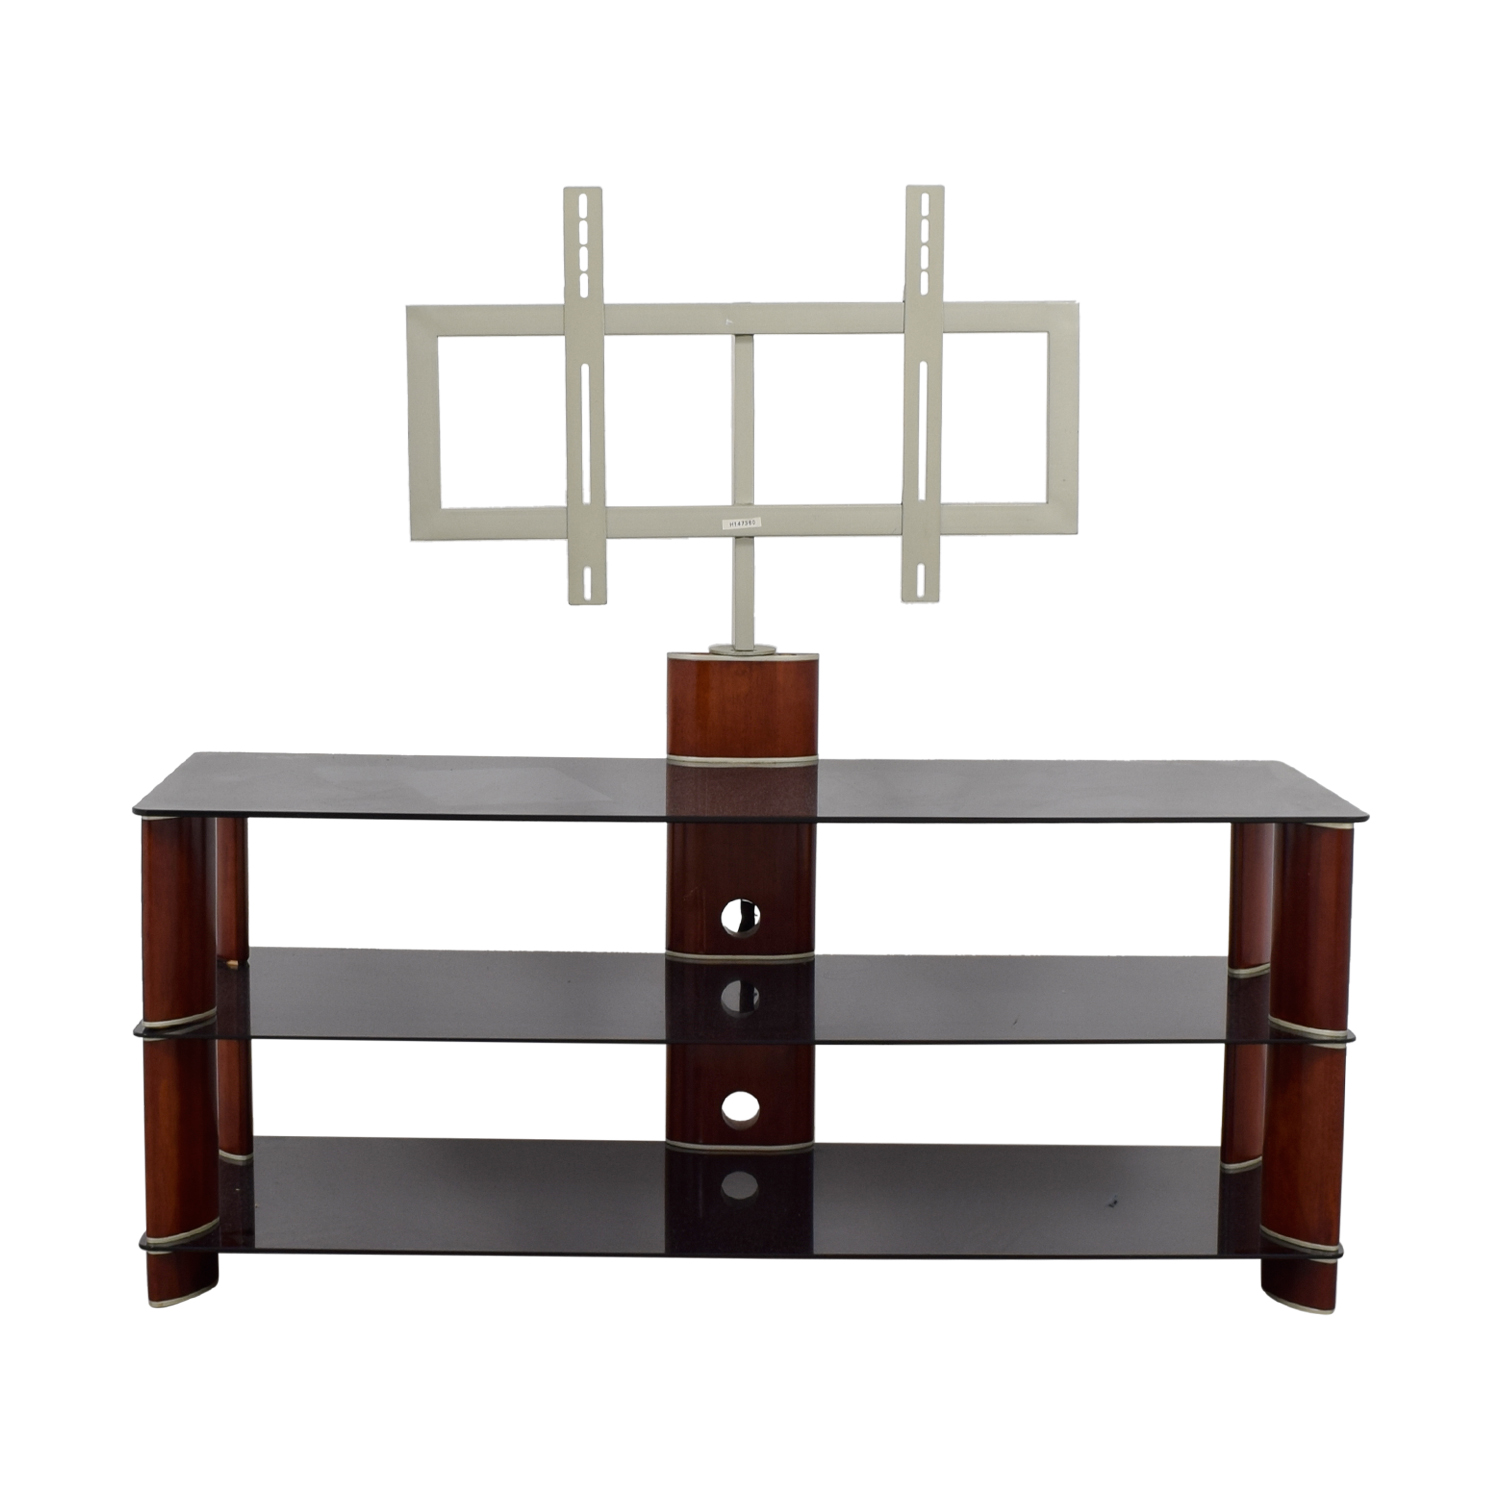 Terrific 89 Off Pc Richard Pc Richards Tempered Glass Tv Stand Storage Gamerscity Chair Design For Home Gamerscityorg